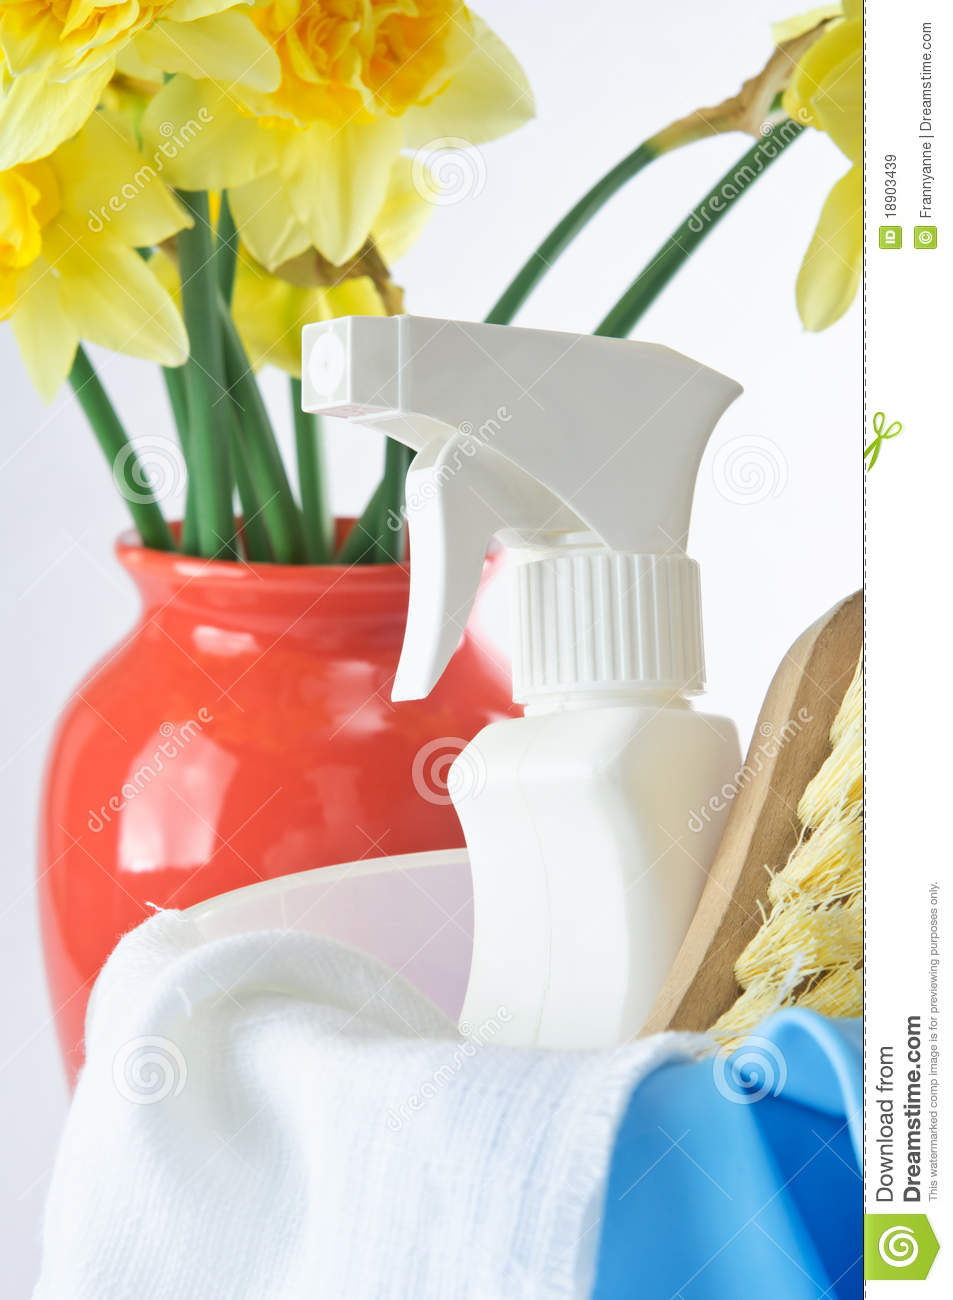 Download Spring Cleaning stock image. Image of bristles, duster - 18903439